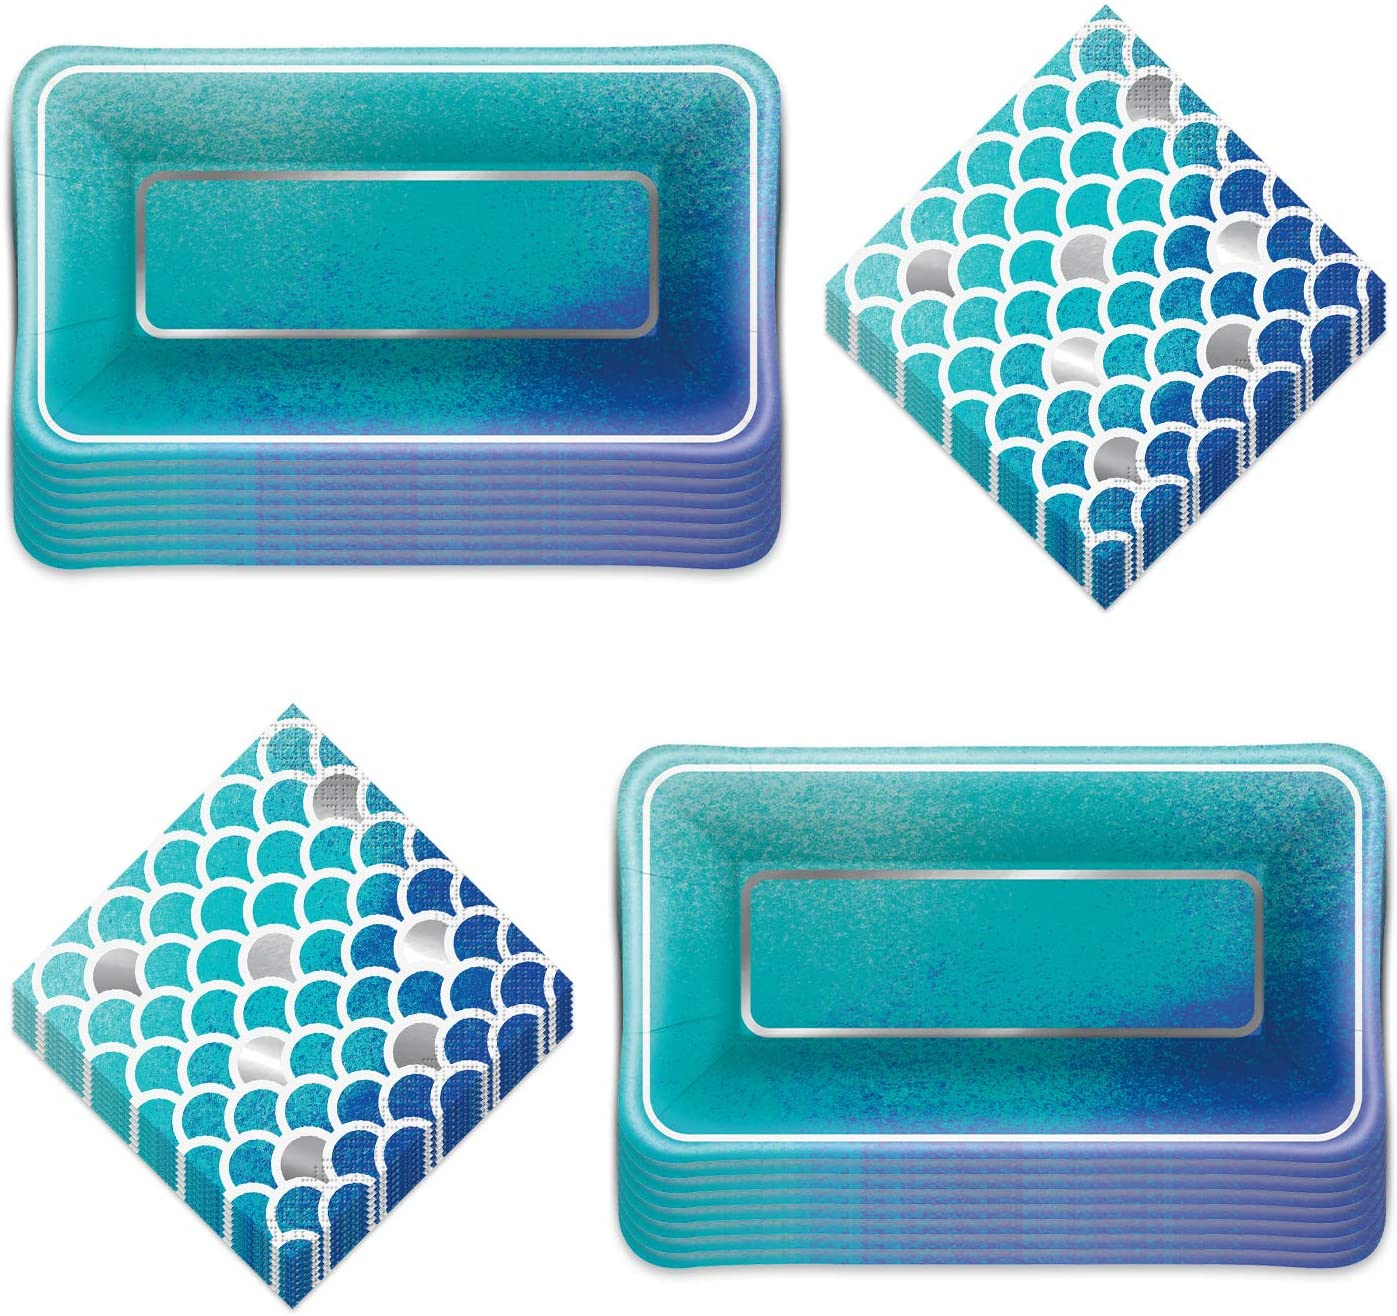 Mermaid and Fish Scale Ocean Blues Metallic Paper Appetizer Dessert Plates and Beverage Napkins (Serves 16)